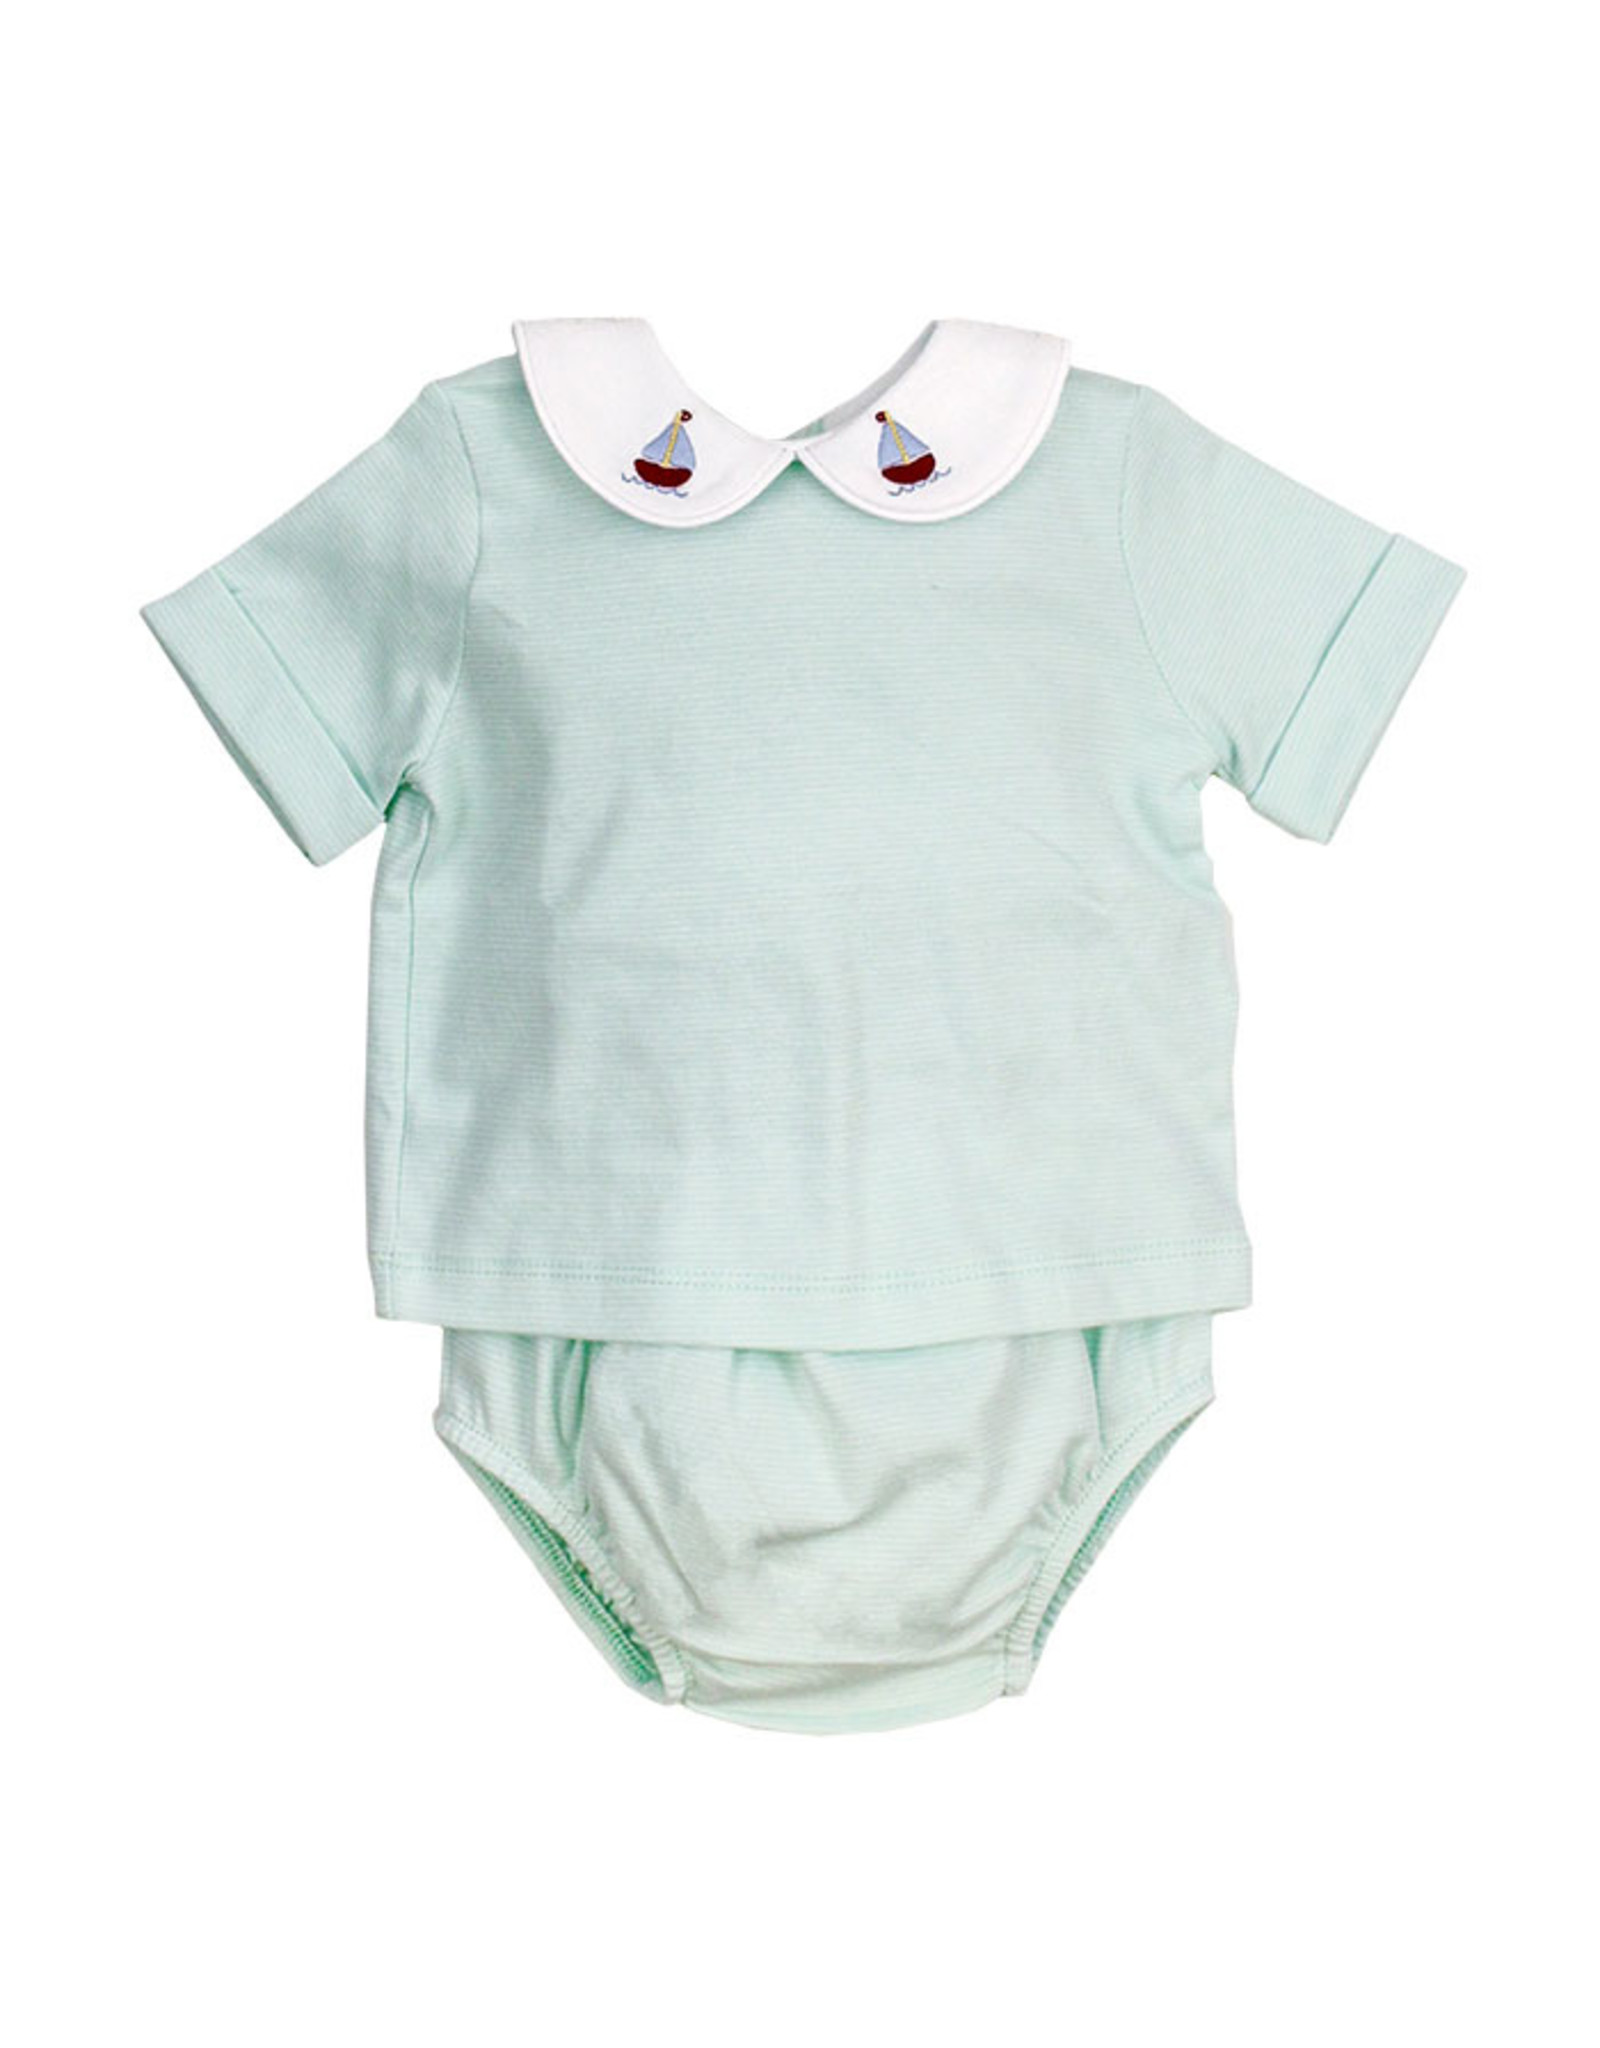 The Bailey Boys Sailboat Embroidered Seaglass Stripe Diaper Cover Set